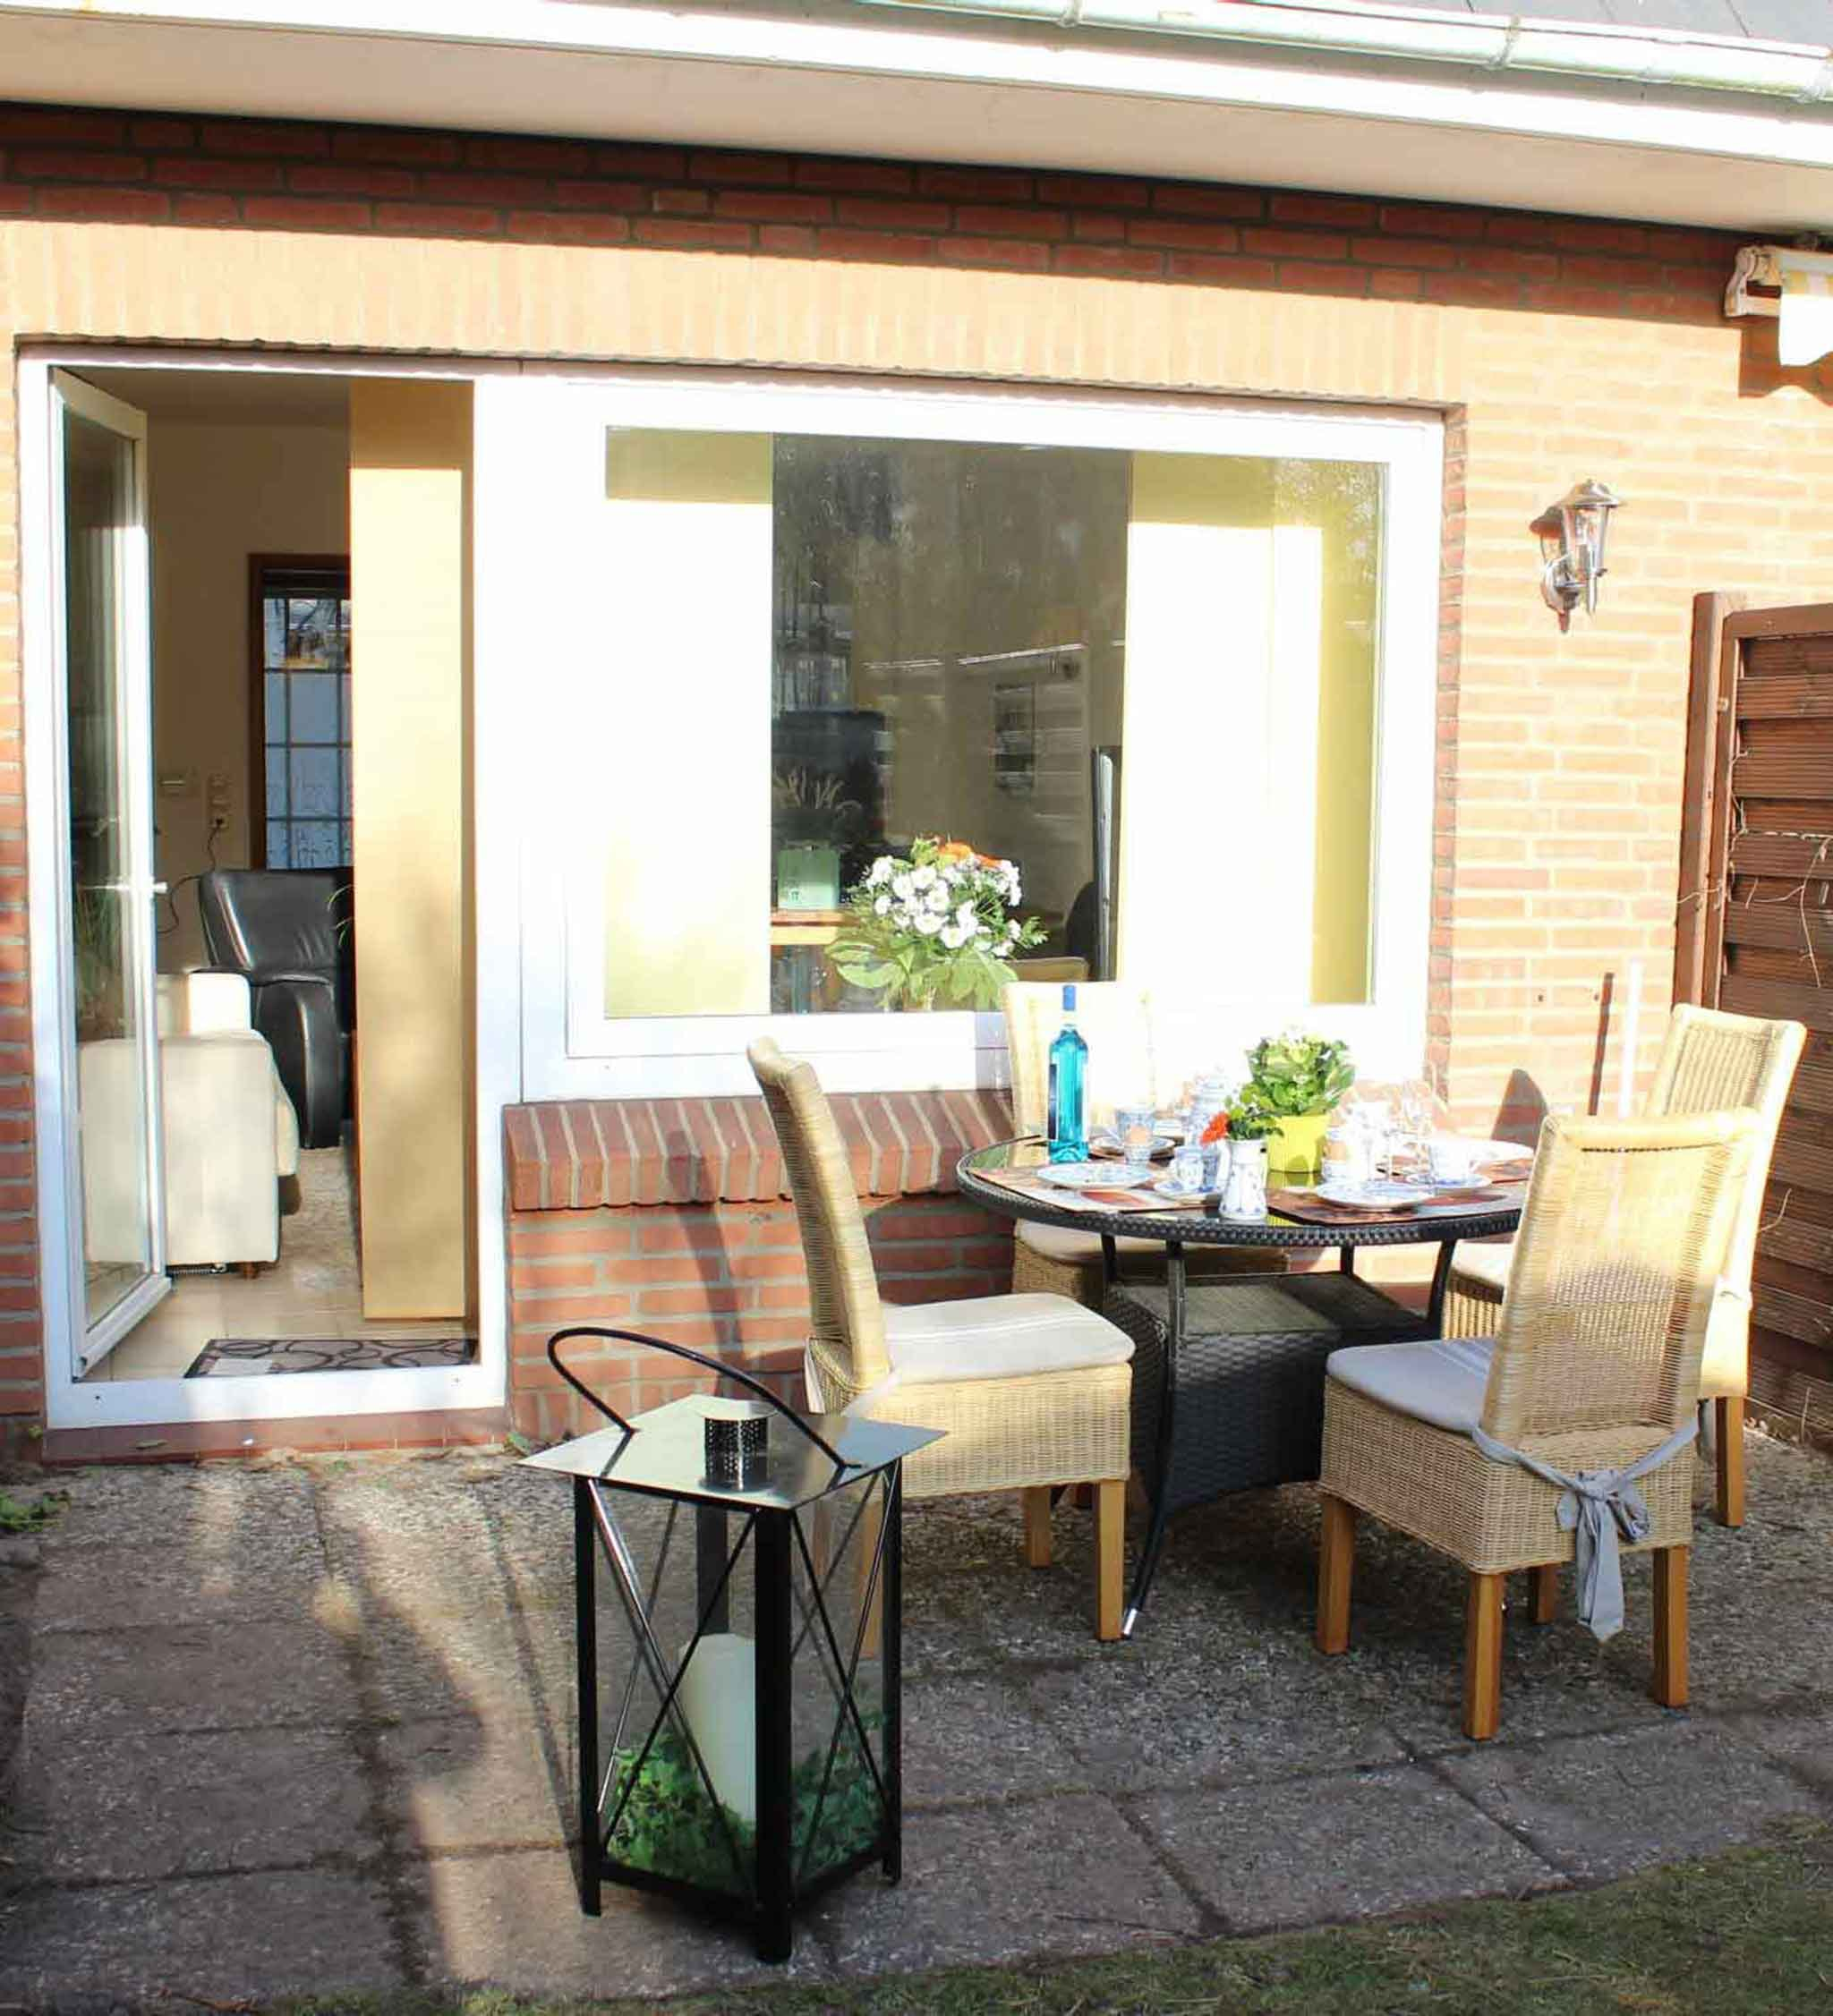 Sun Garden Sylt House With 3 Bedrooms In Sylt Ost With Enclosed Garden And Wifi Sylt